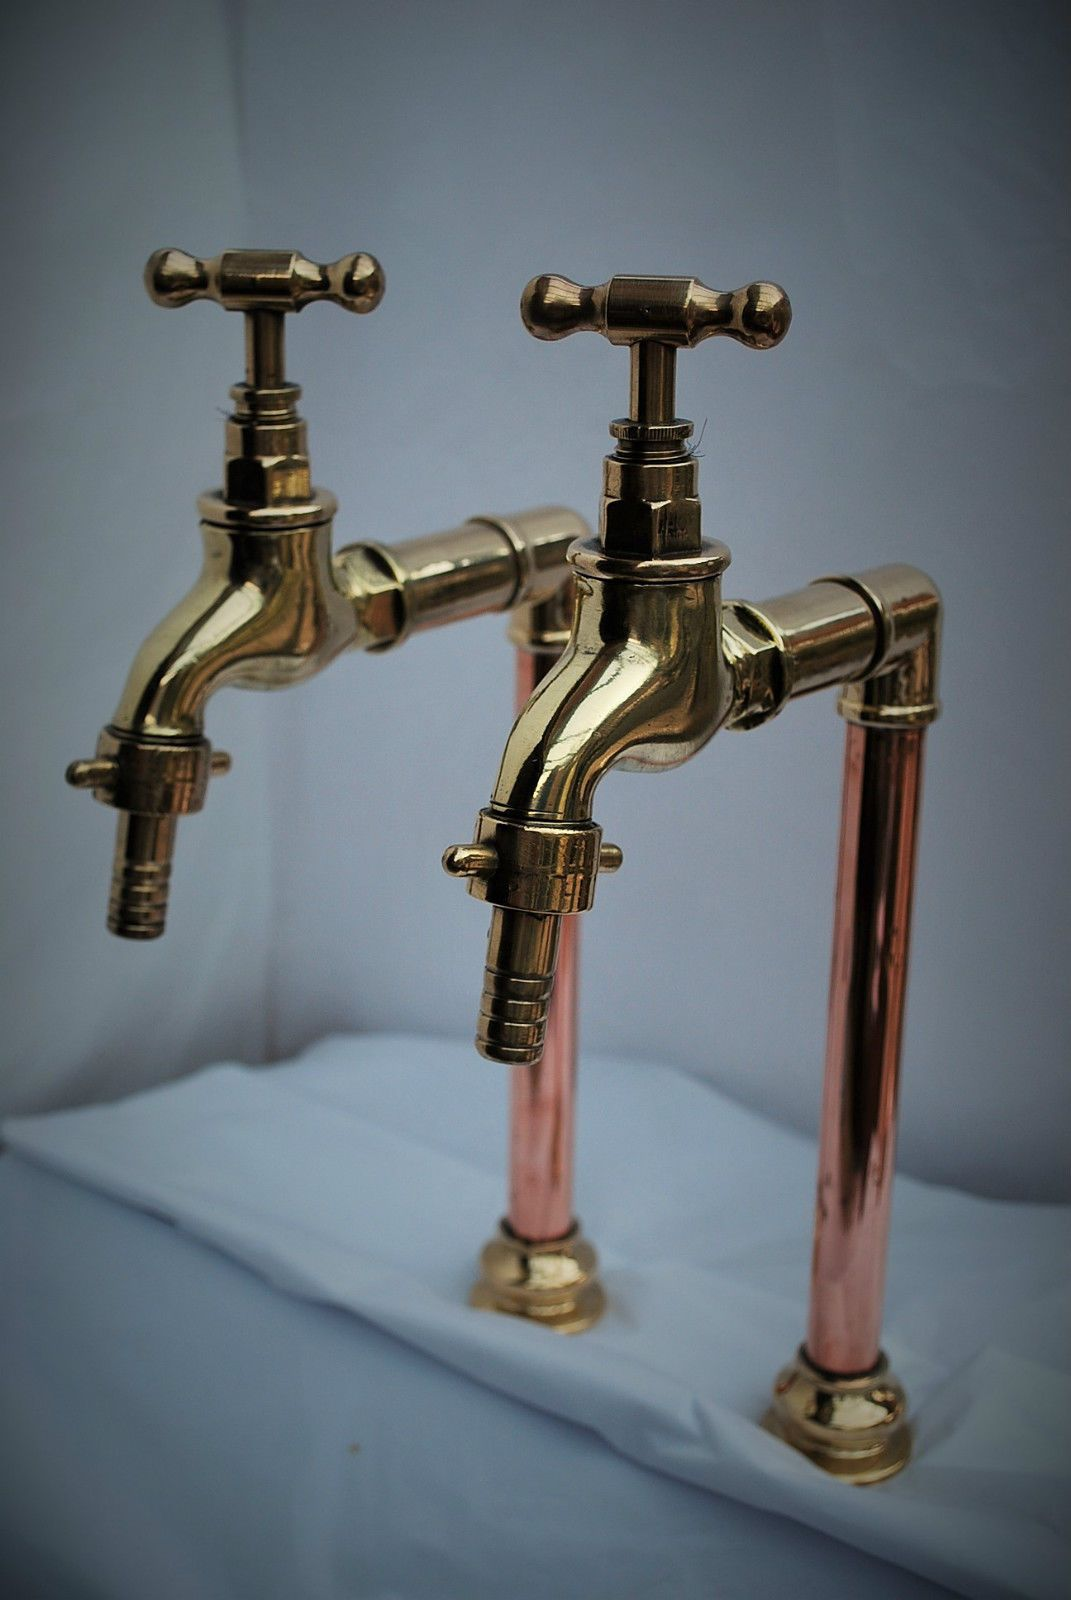 Copper Taps Brass And Copper Belfast Kitchen Sink Tall Bib Taps Old